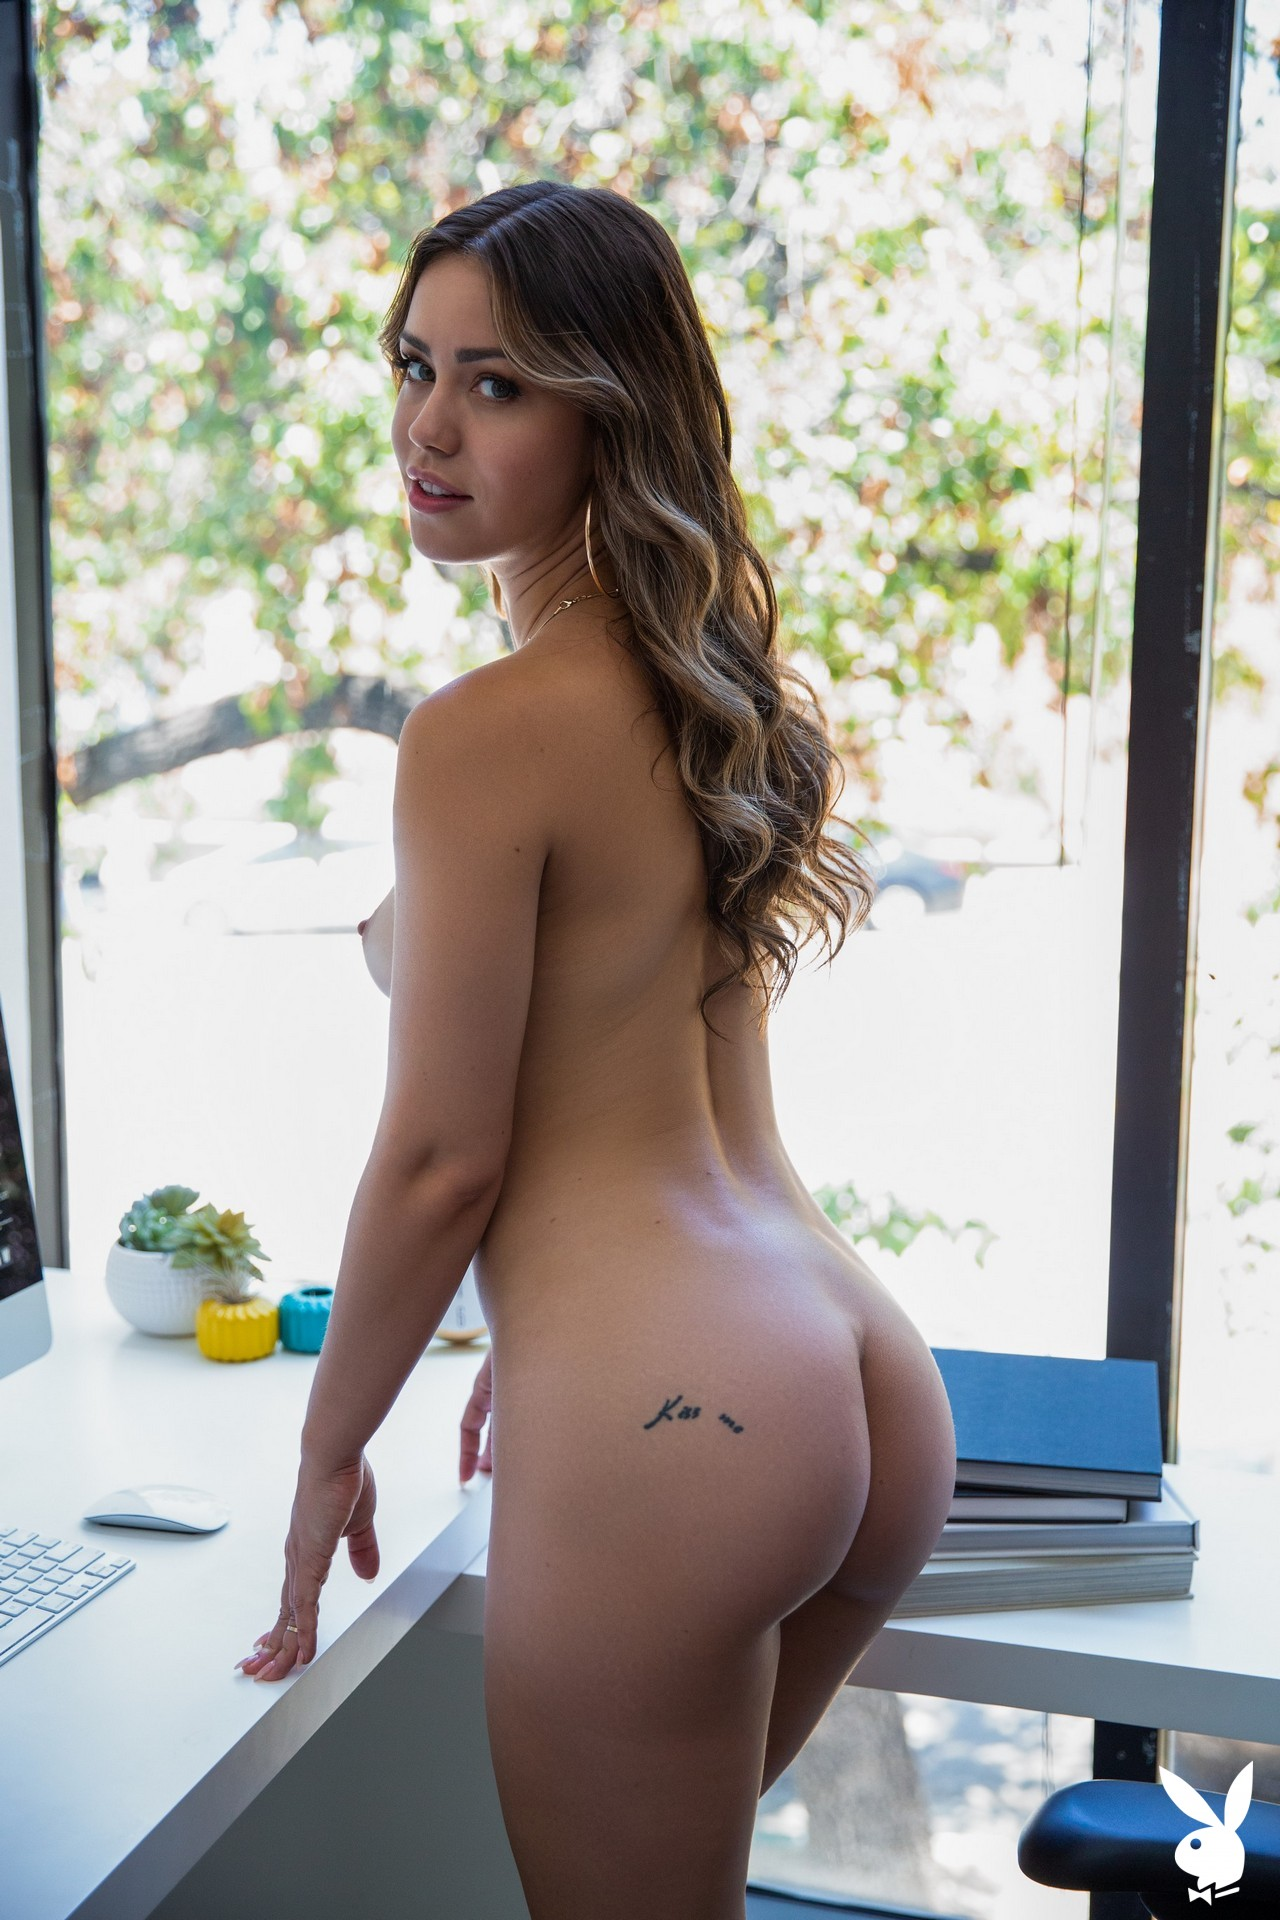 Alina Lopez In Down To Business Playboy Plus (14)